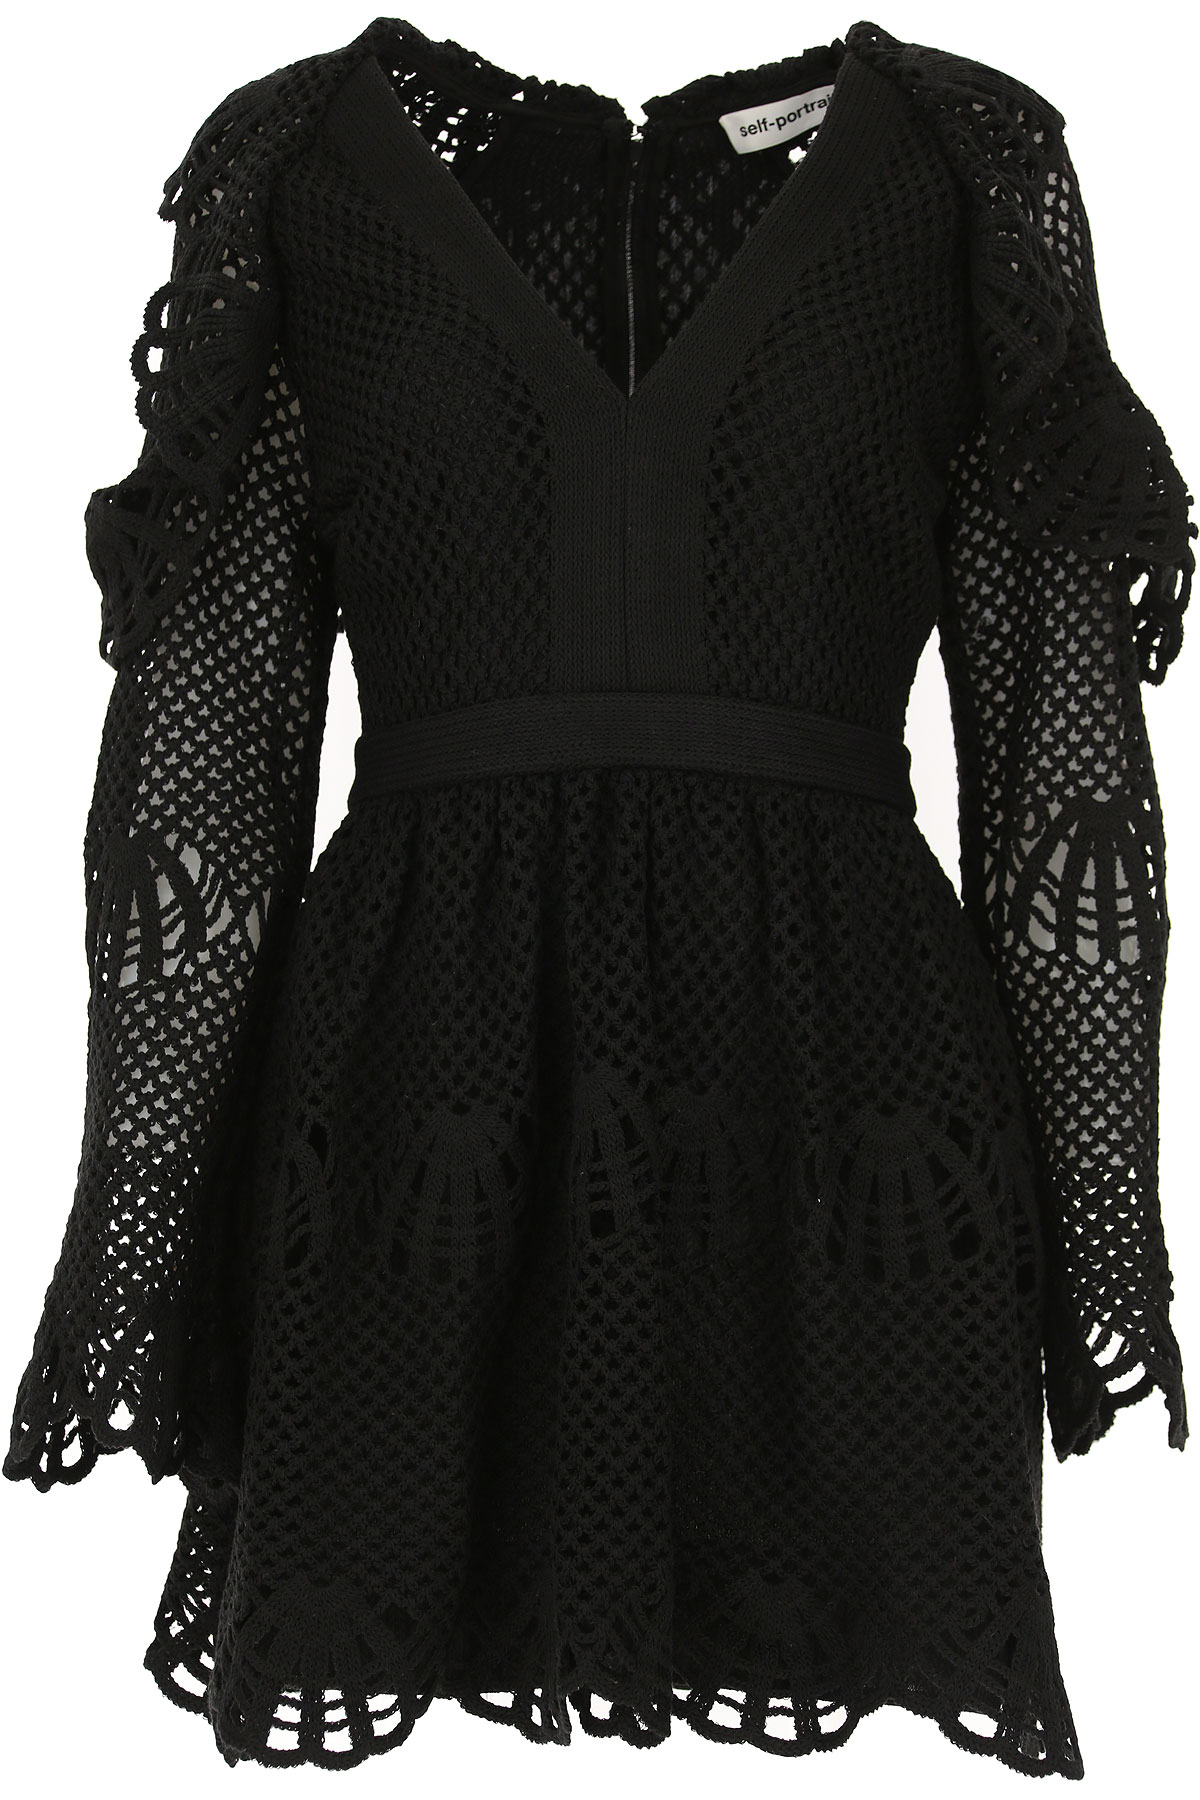 Self-portrait Dress for Women, Evening Cocktail Party On Sale in Outlet, Black, Cotton, 2019, XS - UK 6 - IT 38